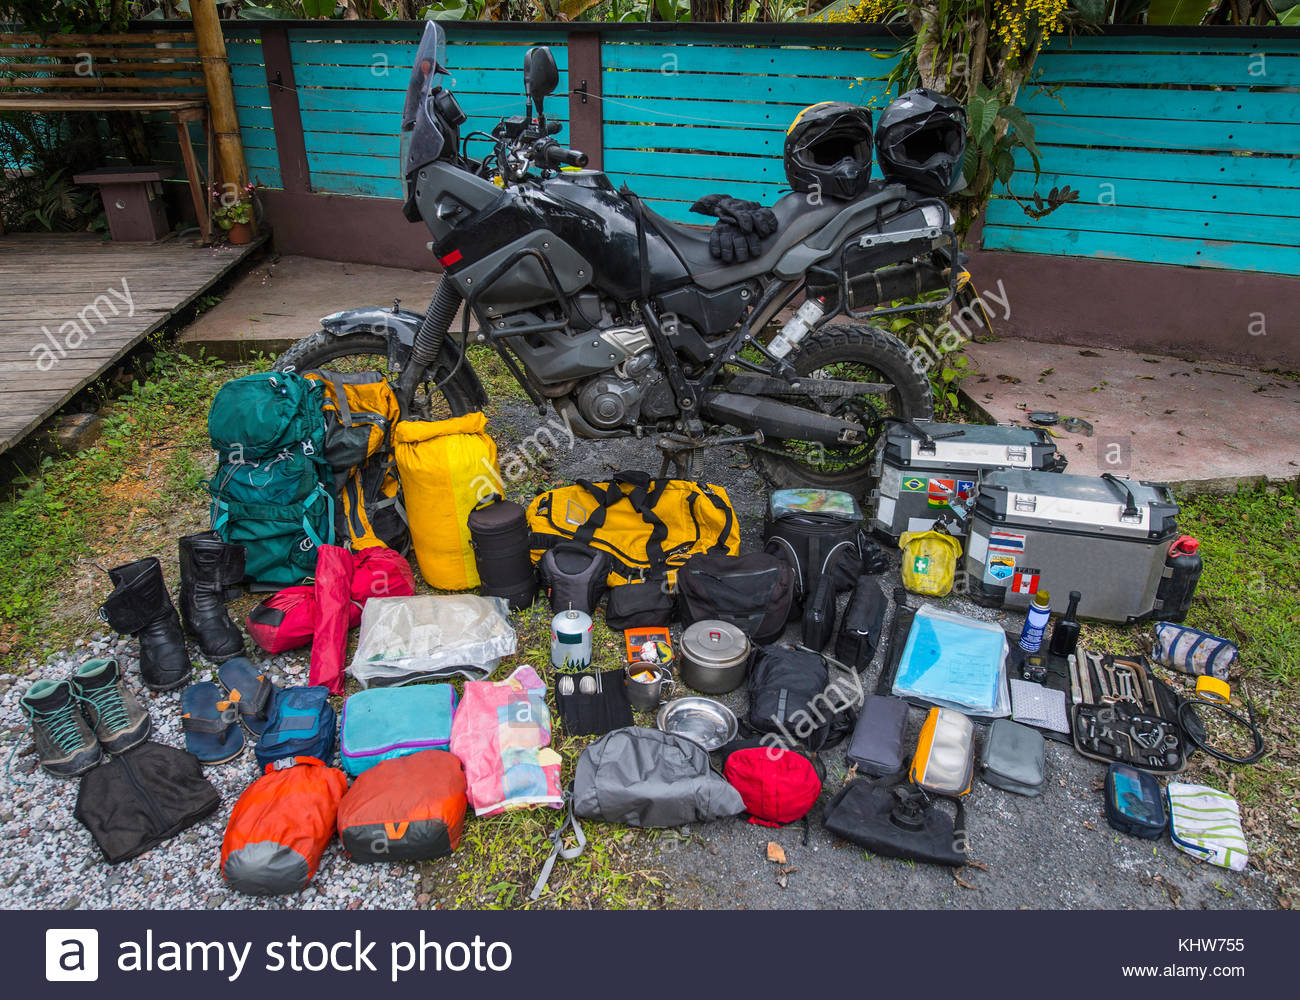 Adventure motorbike with travel gear, Medellin, Antioquia, Colombia - Stock Image